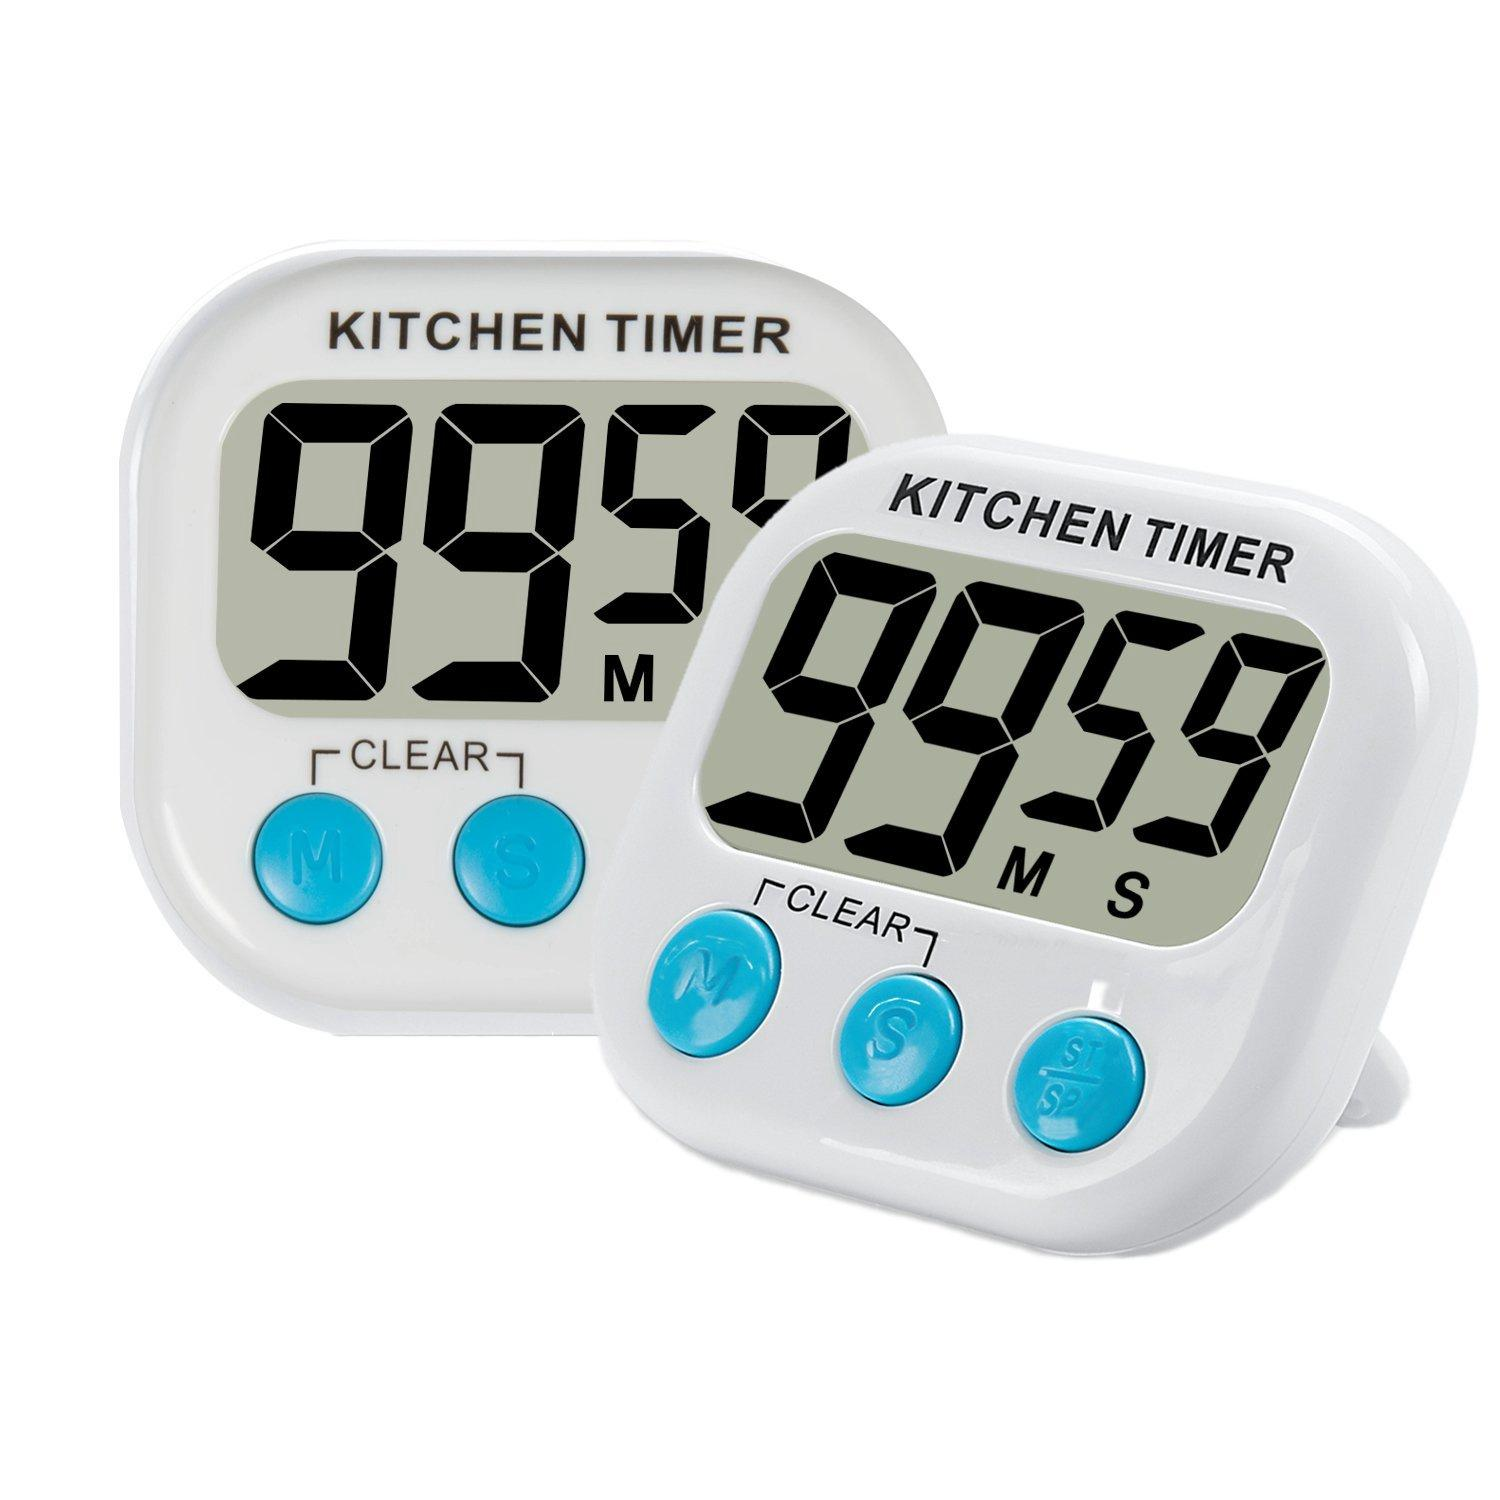 Online Cheap Digital Kitchen Timer With Premium Magnetic Backing For Cooking,  Baking And More Lcd Display, Loud Alarm, Countdown By Honestar_ltd | Dhgate.